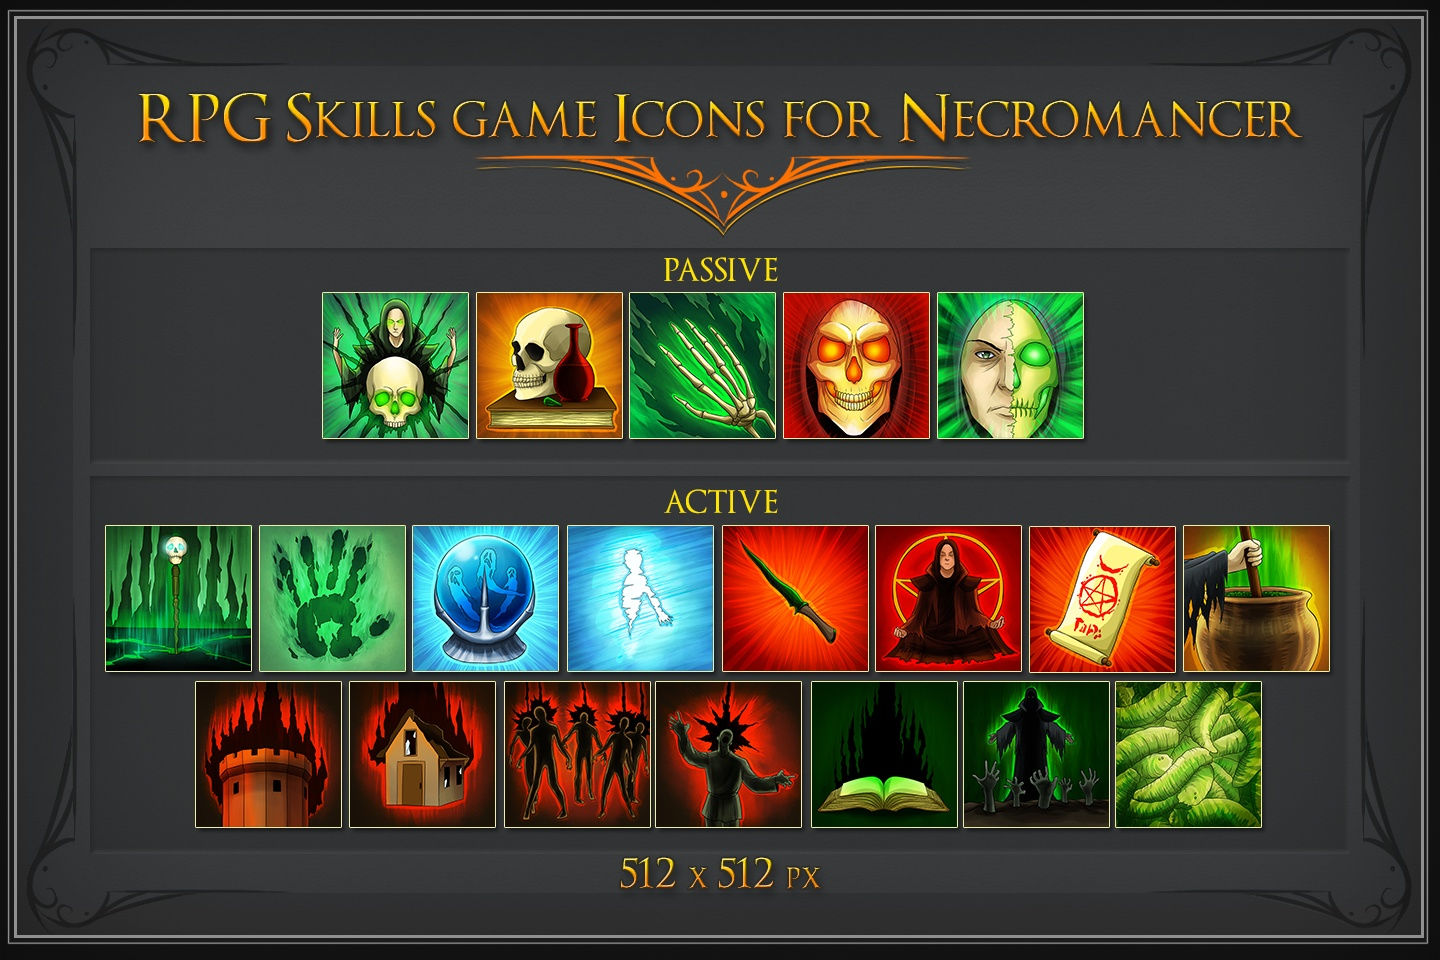 RPG Skill Icons for Necromancer